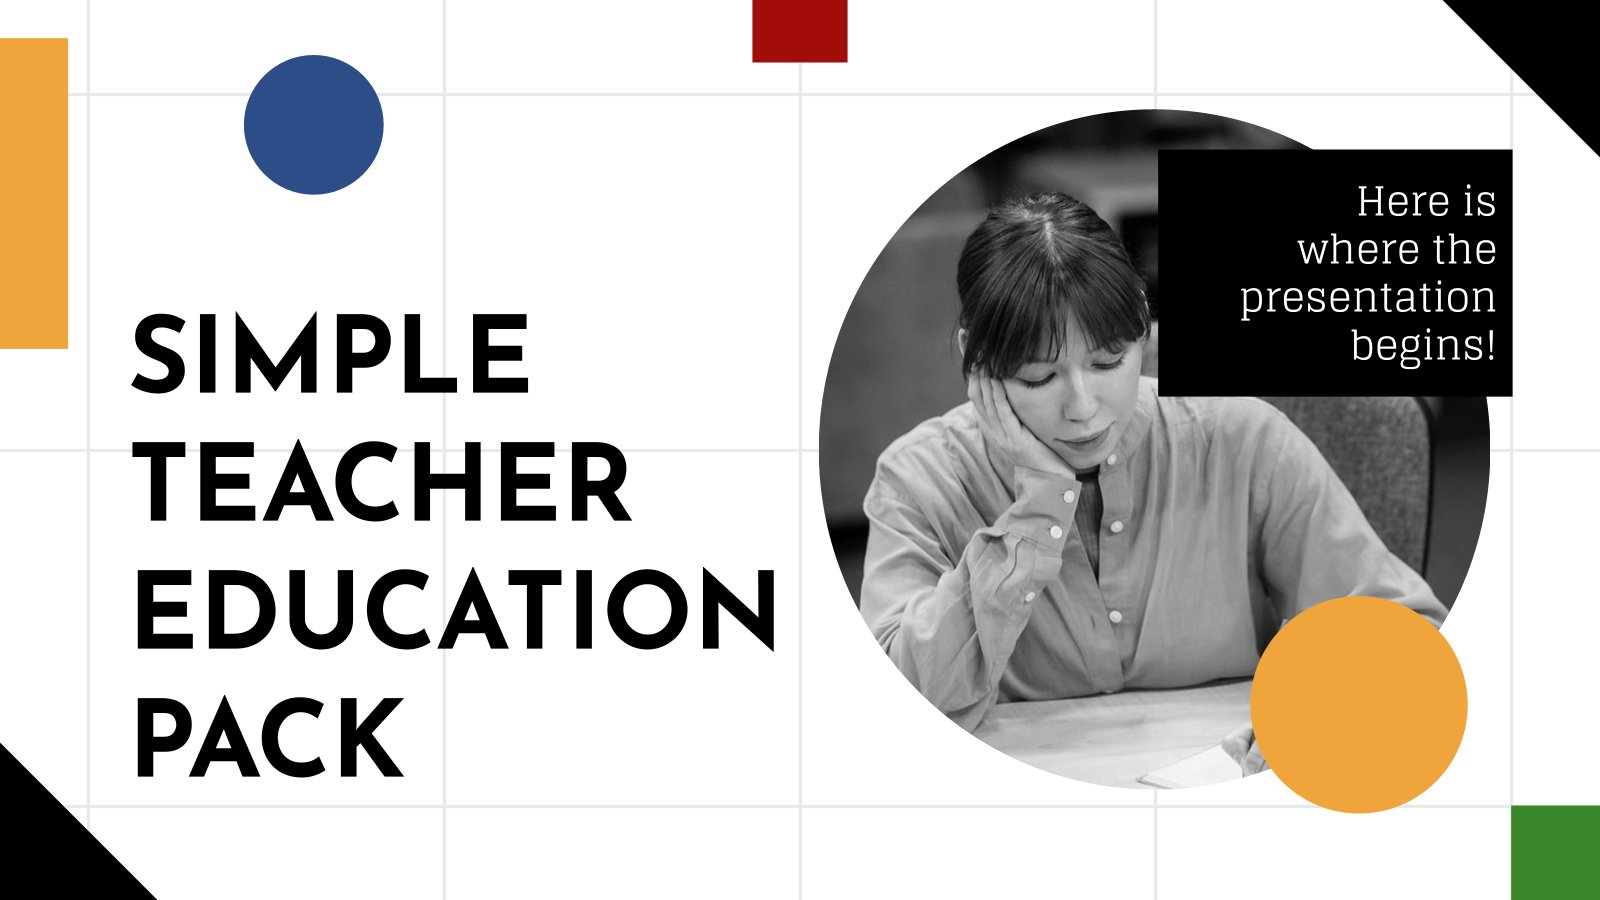 Simple Teacher Education Pack presentation template